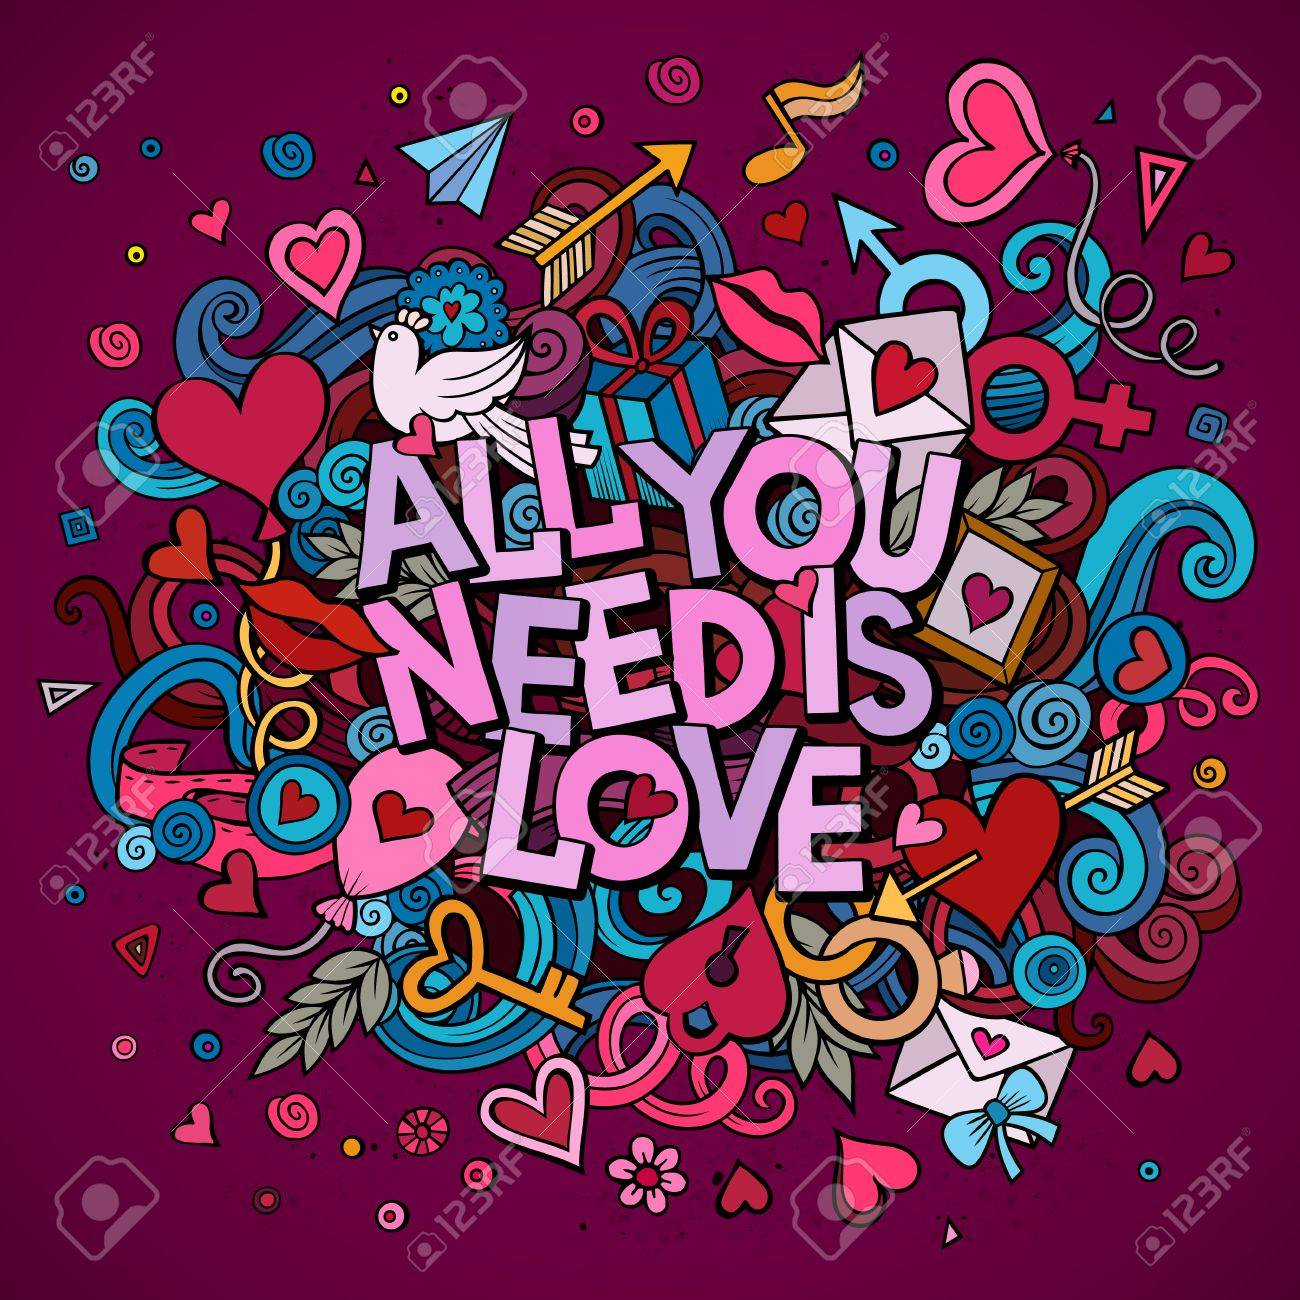 Cartoon vector hand drawn Doodle All You Need is Love illustration. Colorful detailed design background with objects and symbols. All objects are separated - 51737735